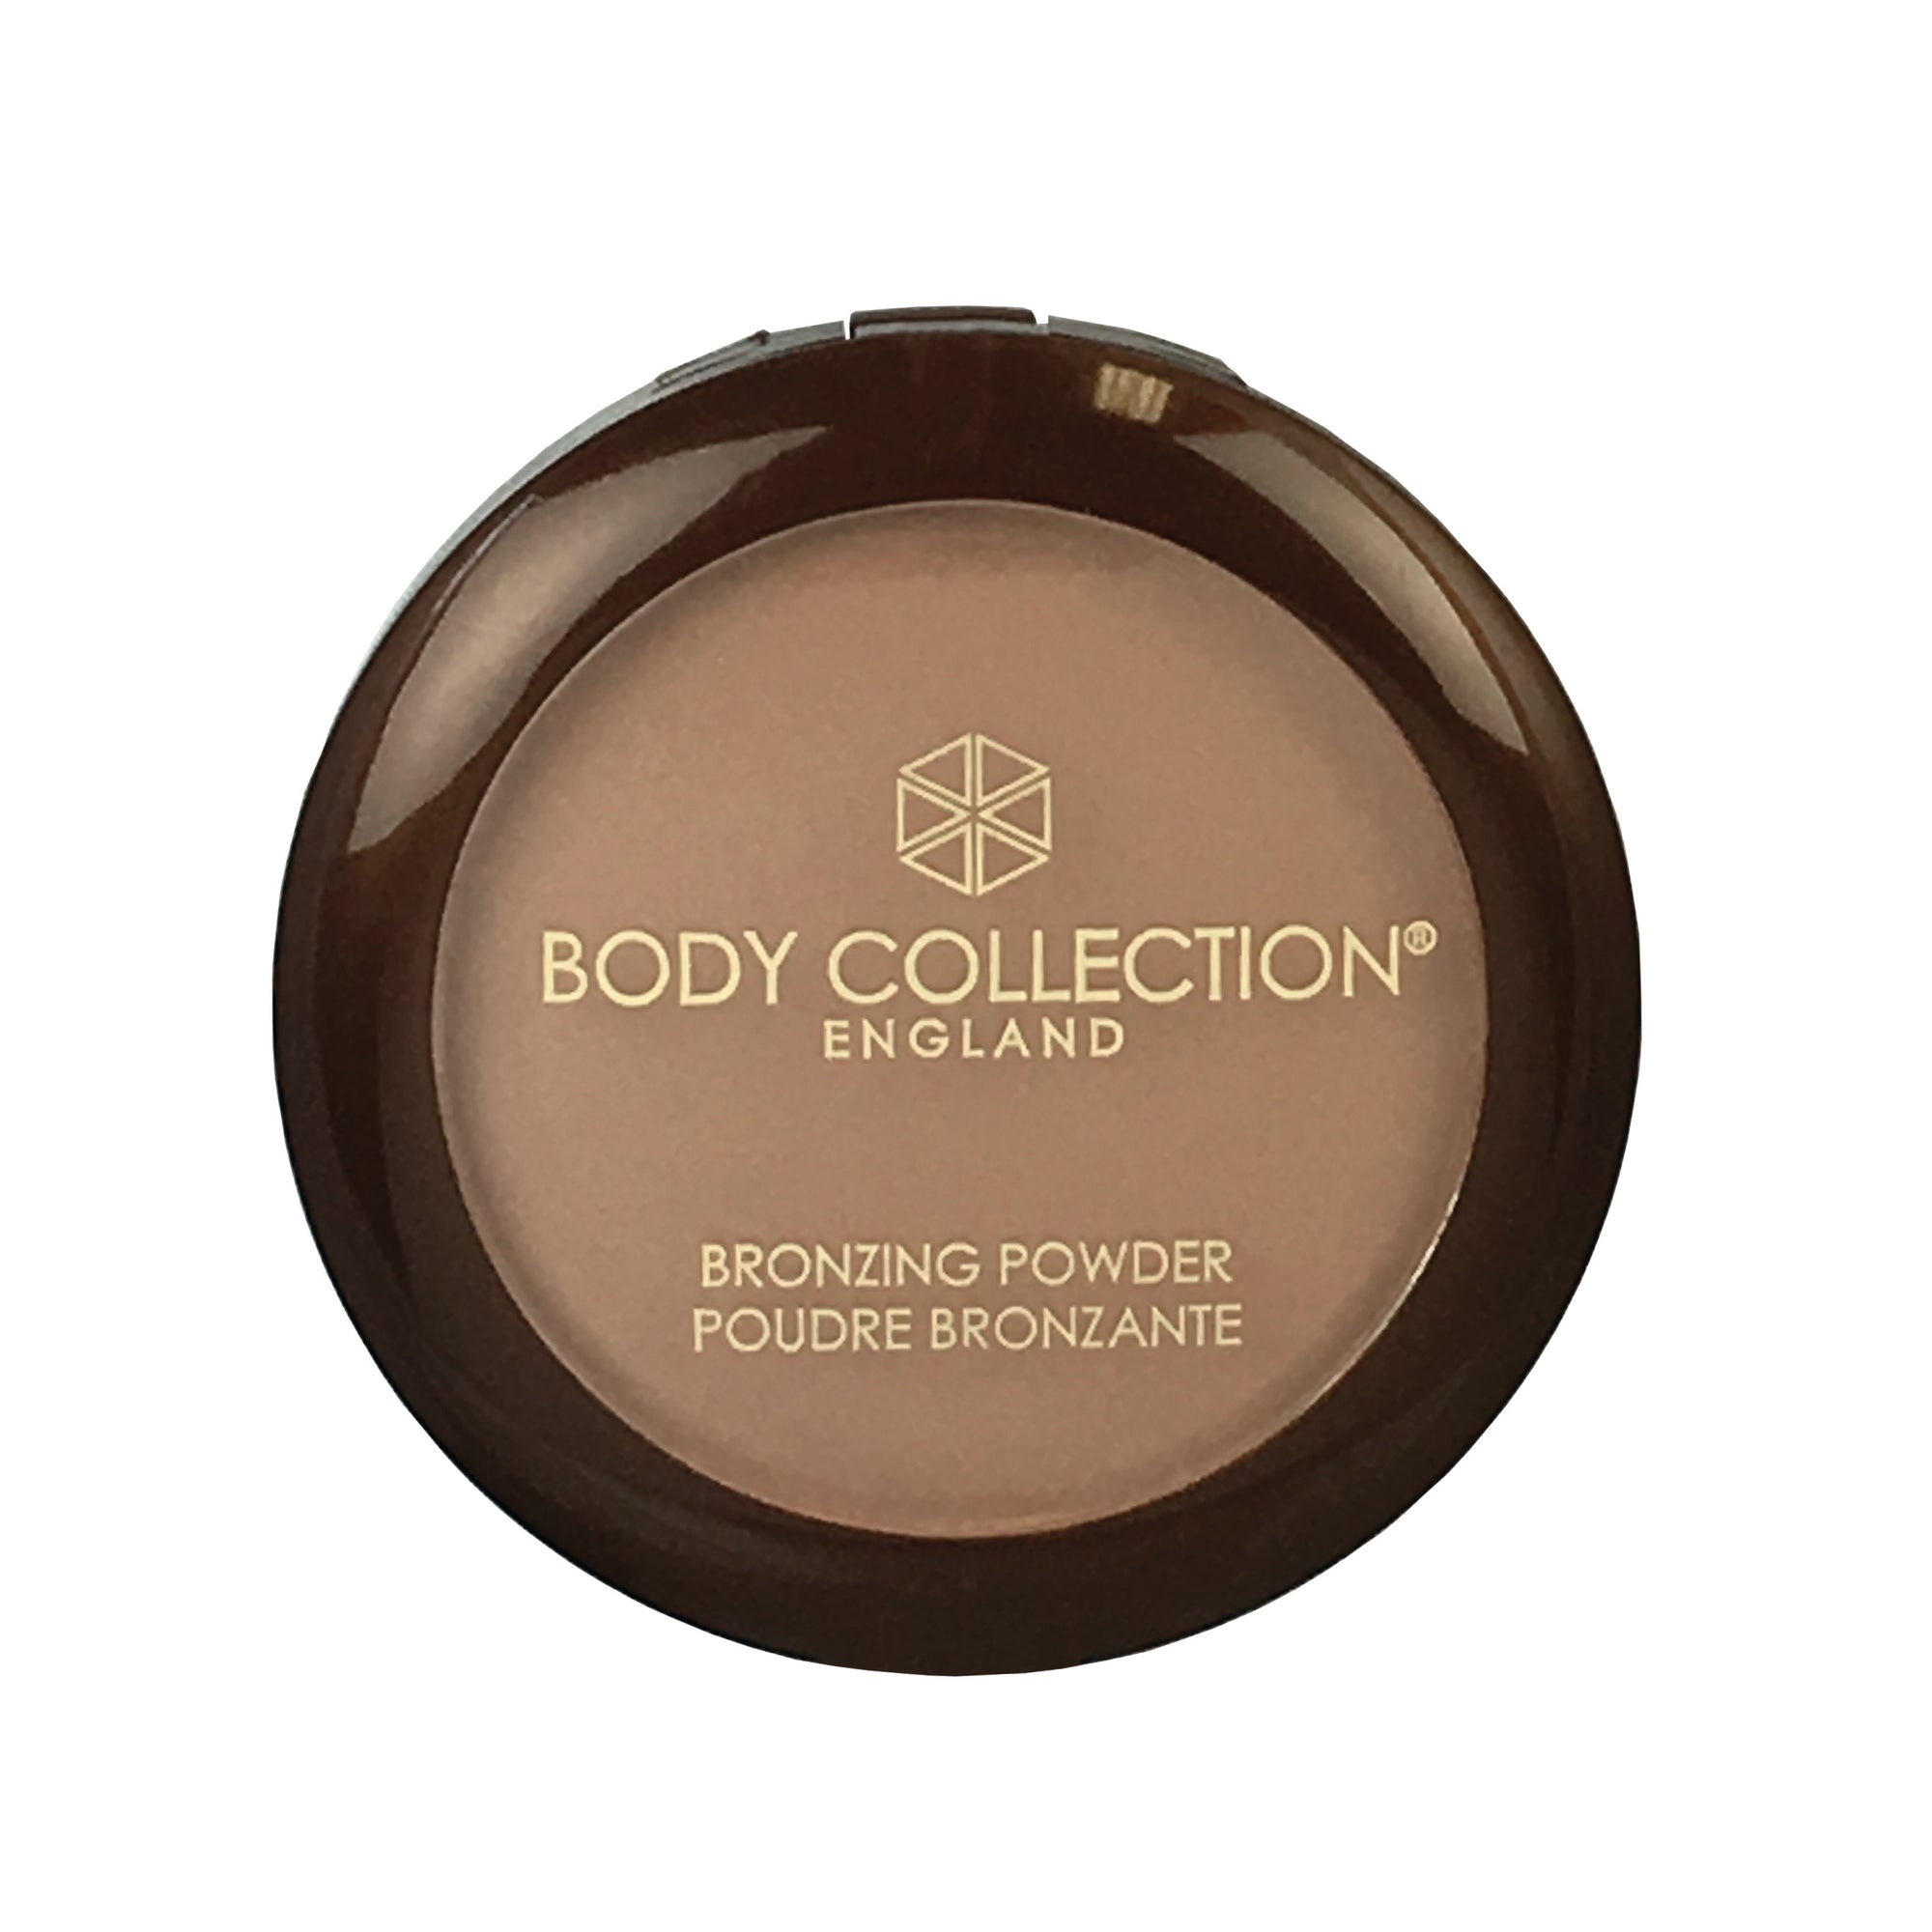 Body Collection Bronzing Powder